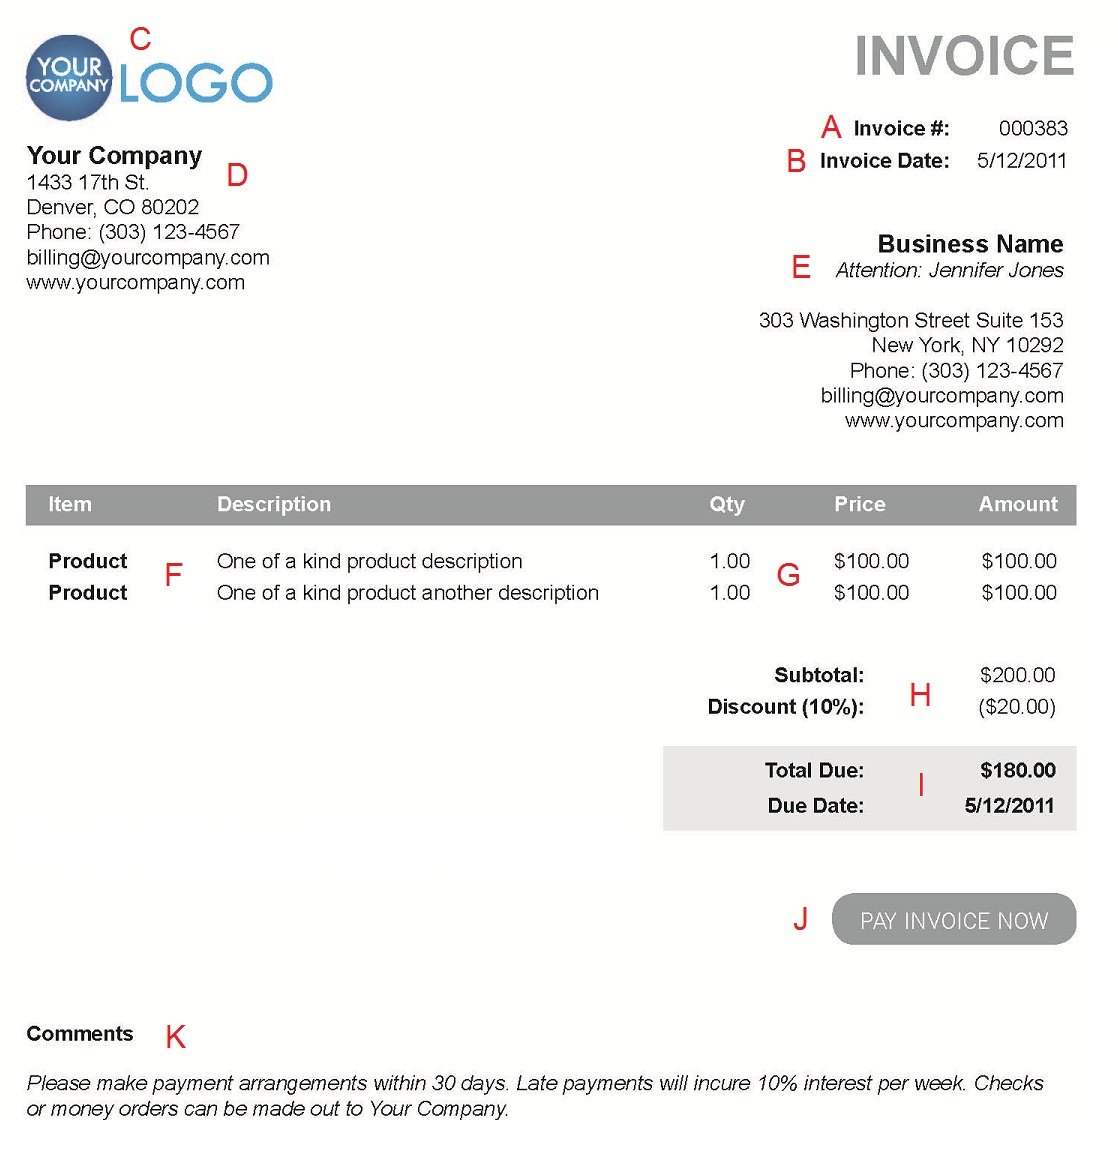 Centralasianshepherdus  Unusual The  Different Sections Of An Electronic Payment Invoice With Interesting A  With Easy On The Eye Proforma Invoice Format For Export Also Pod Invoice In Addition Freeagent Invoice And Fedex Ground Commercial Invoice As Well As What Is The Purpose Of An Invoice Additionally Finding Invoice Price On New Cars From Paysimplecom With Centralasianshepherdus  Interesting The  Different Sections Of An Electronic Payment Invoice With Easy On The Eye A  And Unusual Proforma Invoice Format For Export Also Pod Invoice In Addition Freeagent Invoice From Paysimplecom